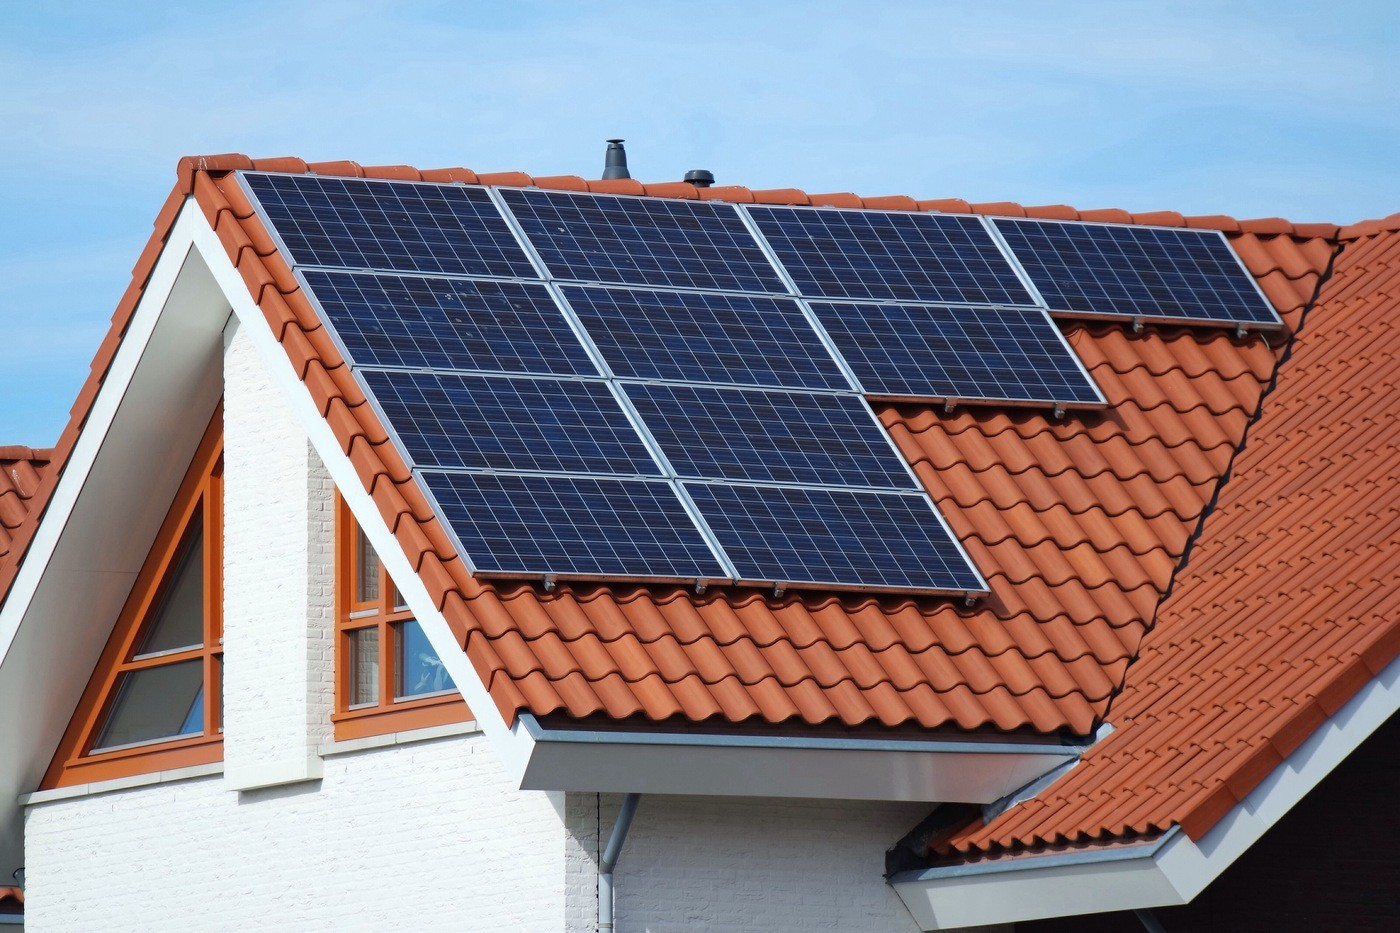 Amid layoffs, some residential solar firms are outsourcing solar design